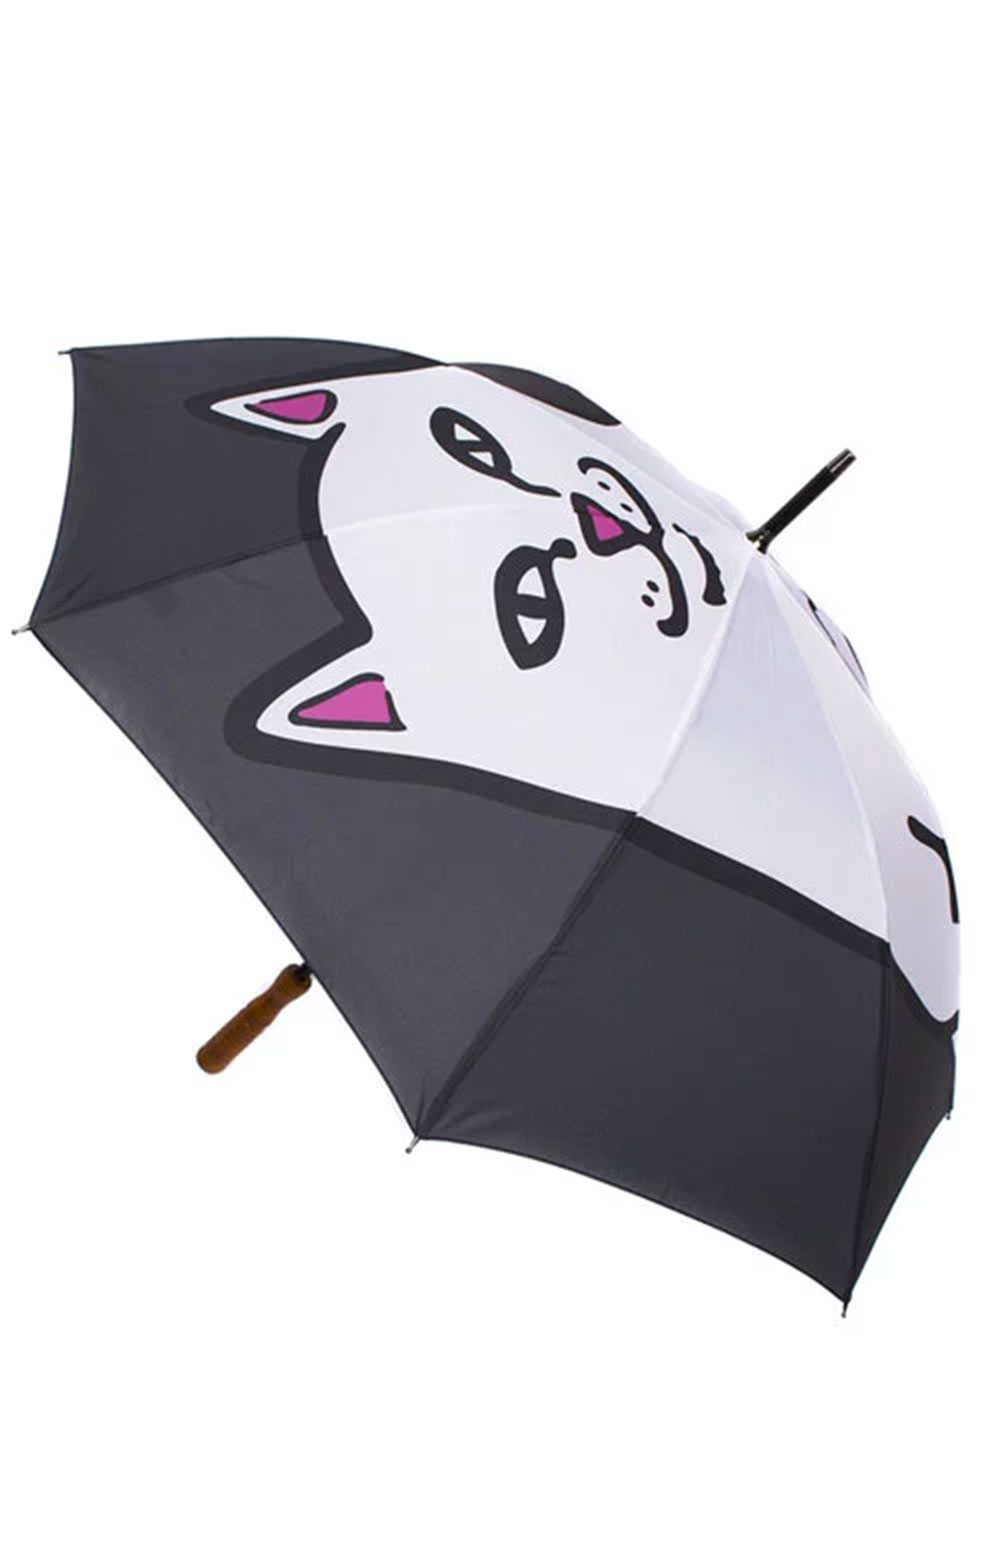 Lord Nermal Umbrella - Black